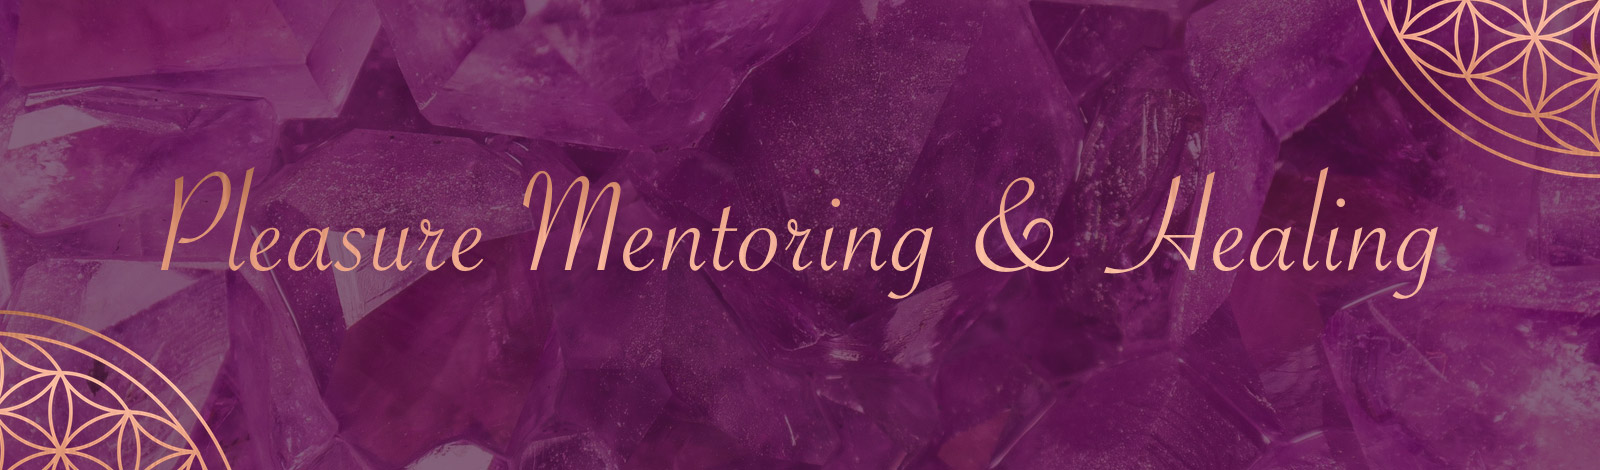 Pleasure_Mentoring_healing_Your_Peachy_Life